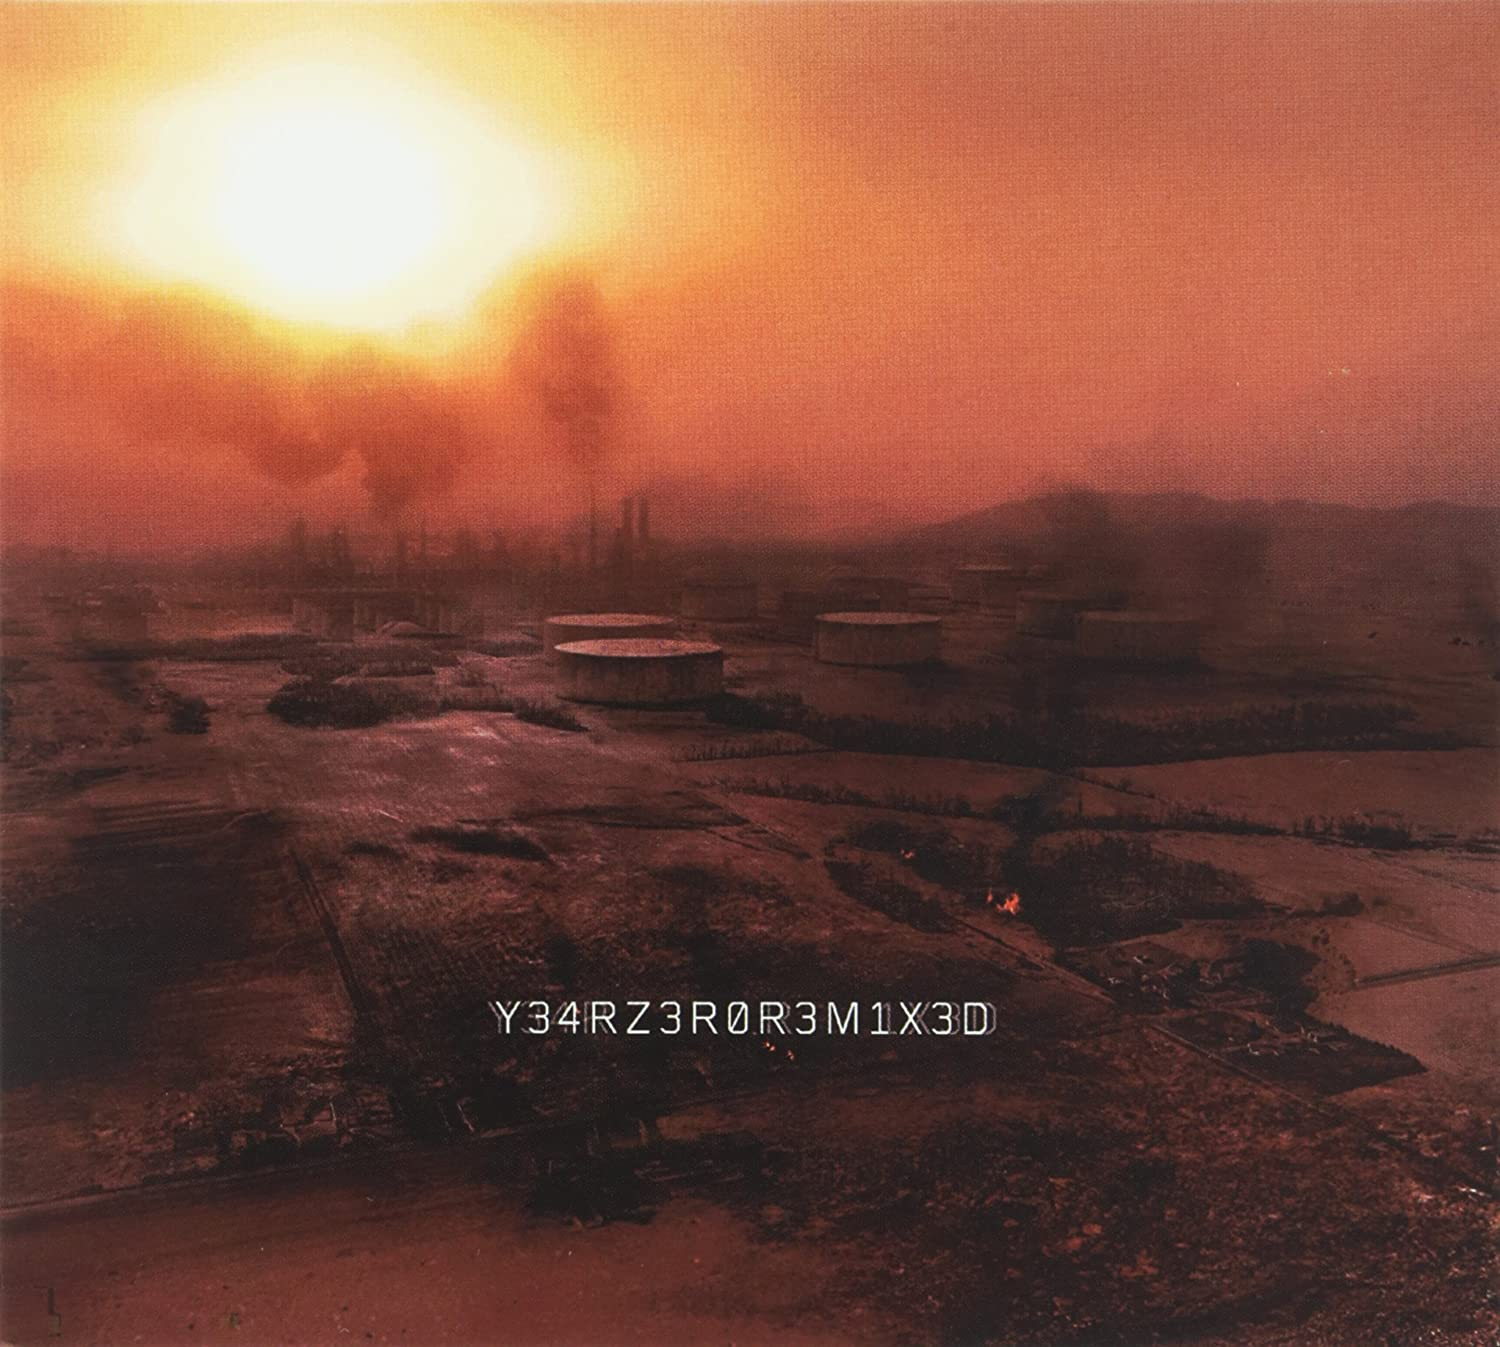 Nine Inch Nails - Y34RZ3R0R3MIX3D [CD/DVD Combo] - Amazon.com Music